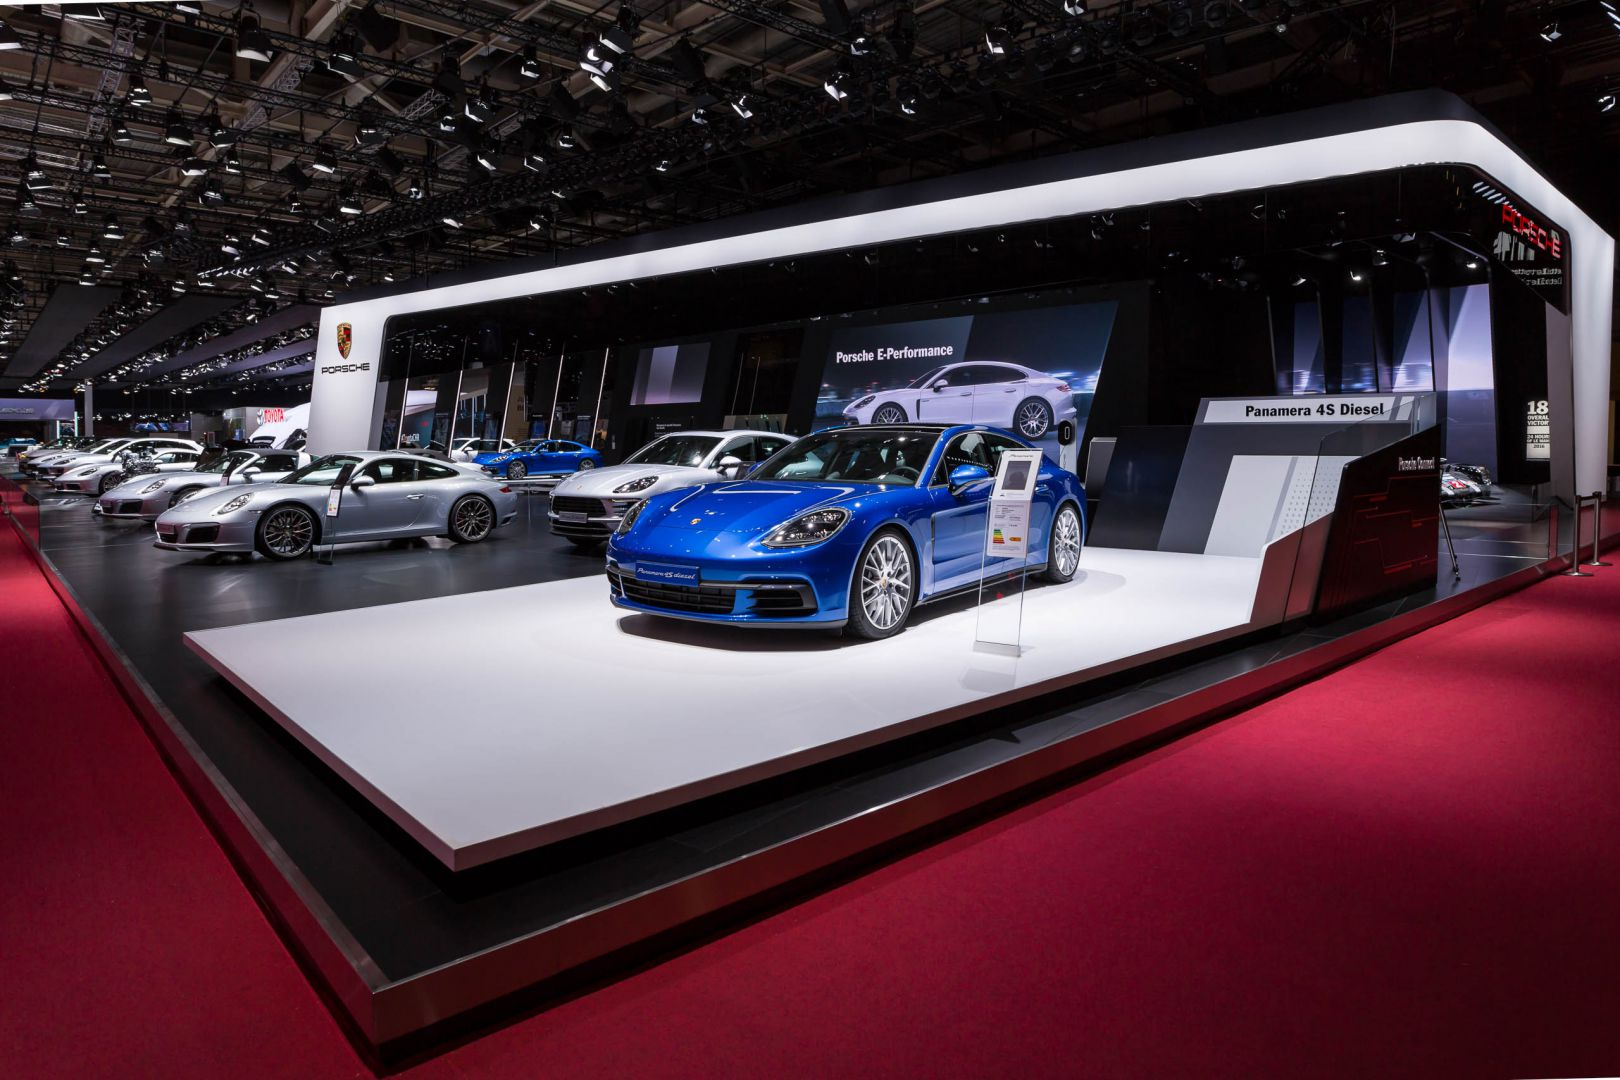 Paris Motor Show - Mondial de l'Automobile 2016 - Paris • Porsche • ©Foto: aadhoc-media • Thomas Rohwedder